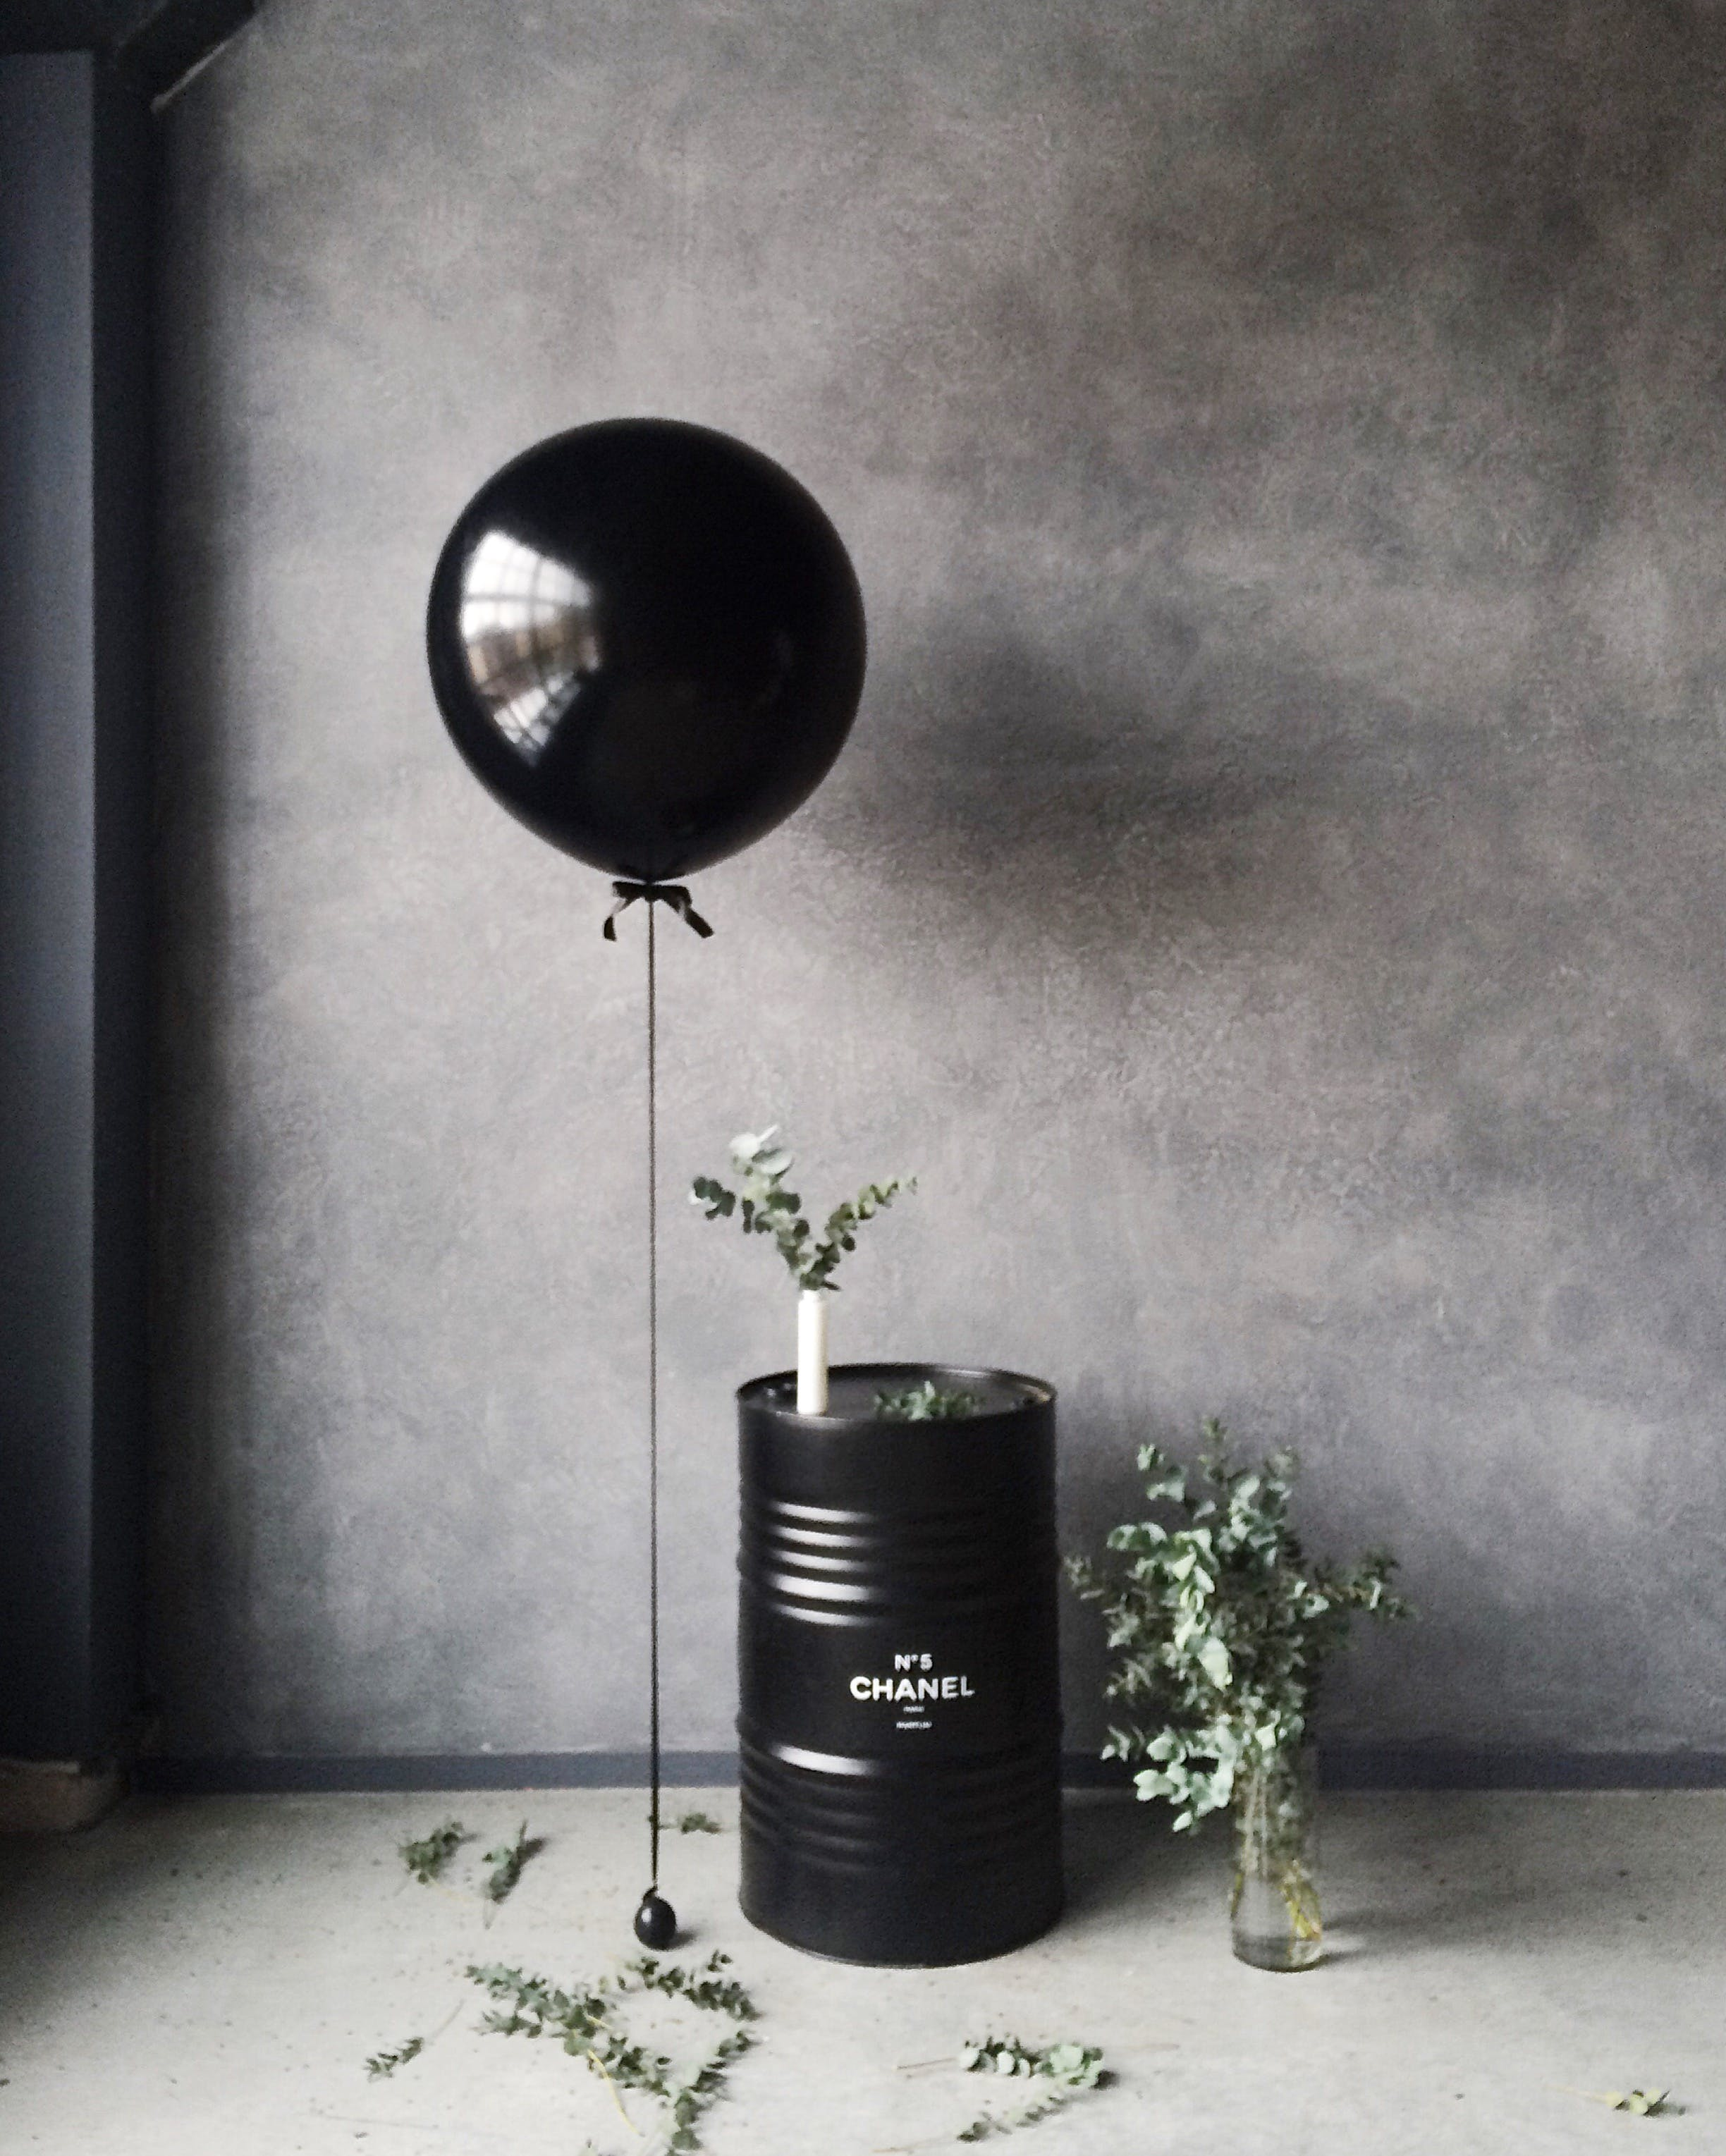 Grayscale Photography of Balloon Beside Chanel Metal Barrel